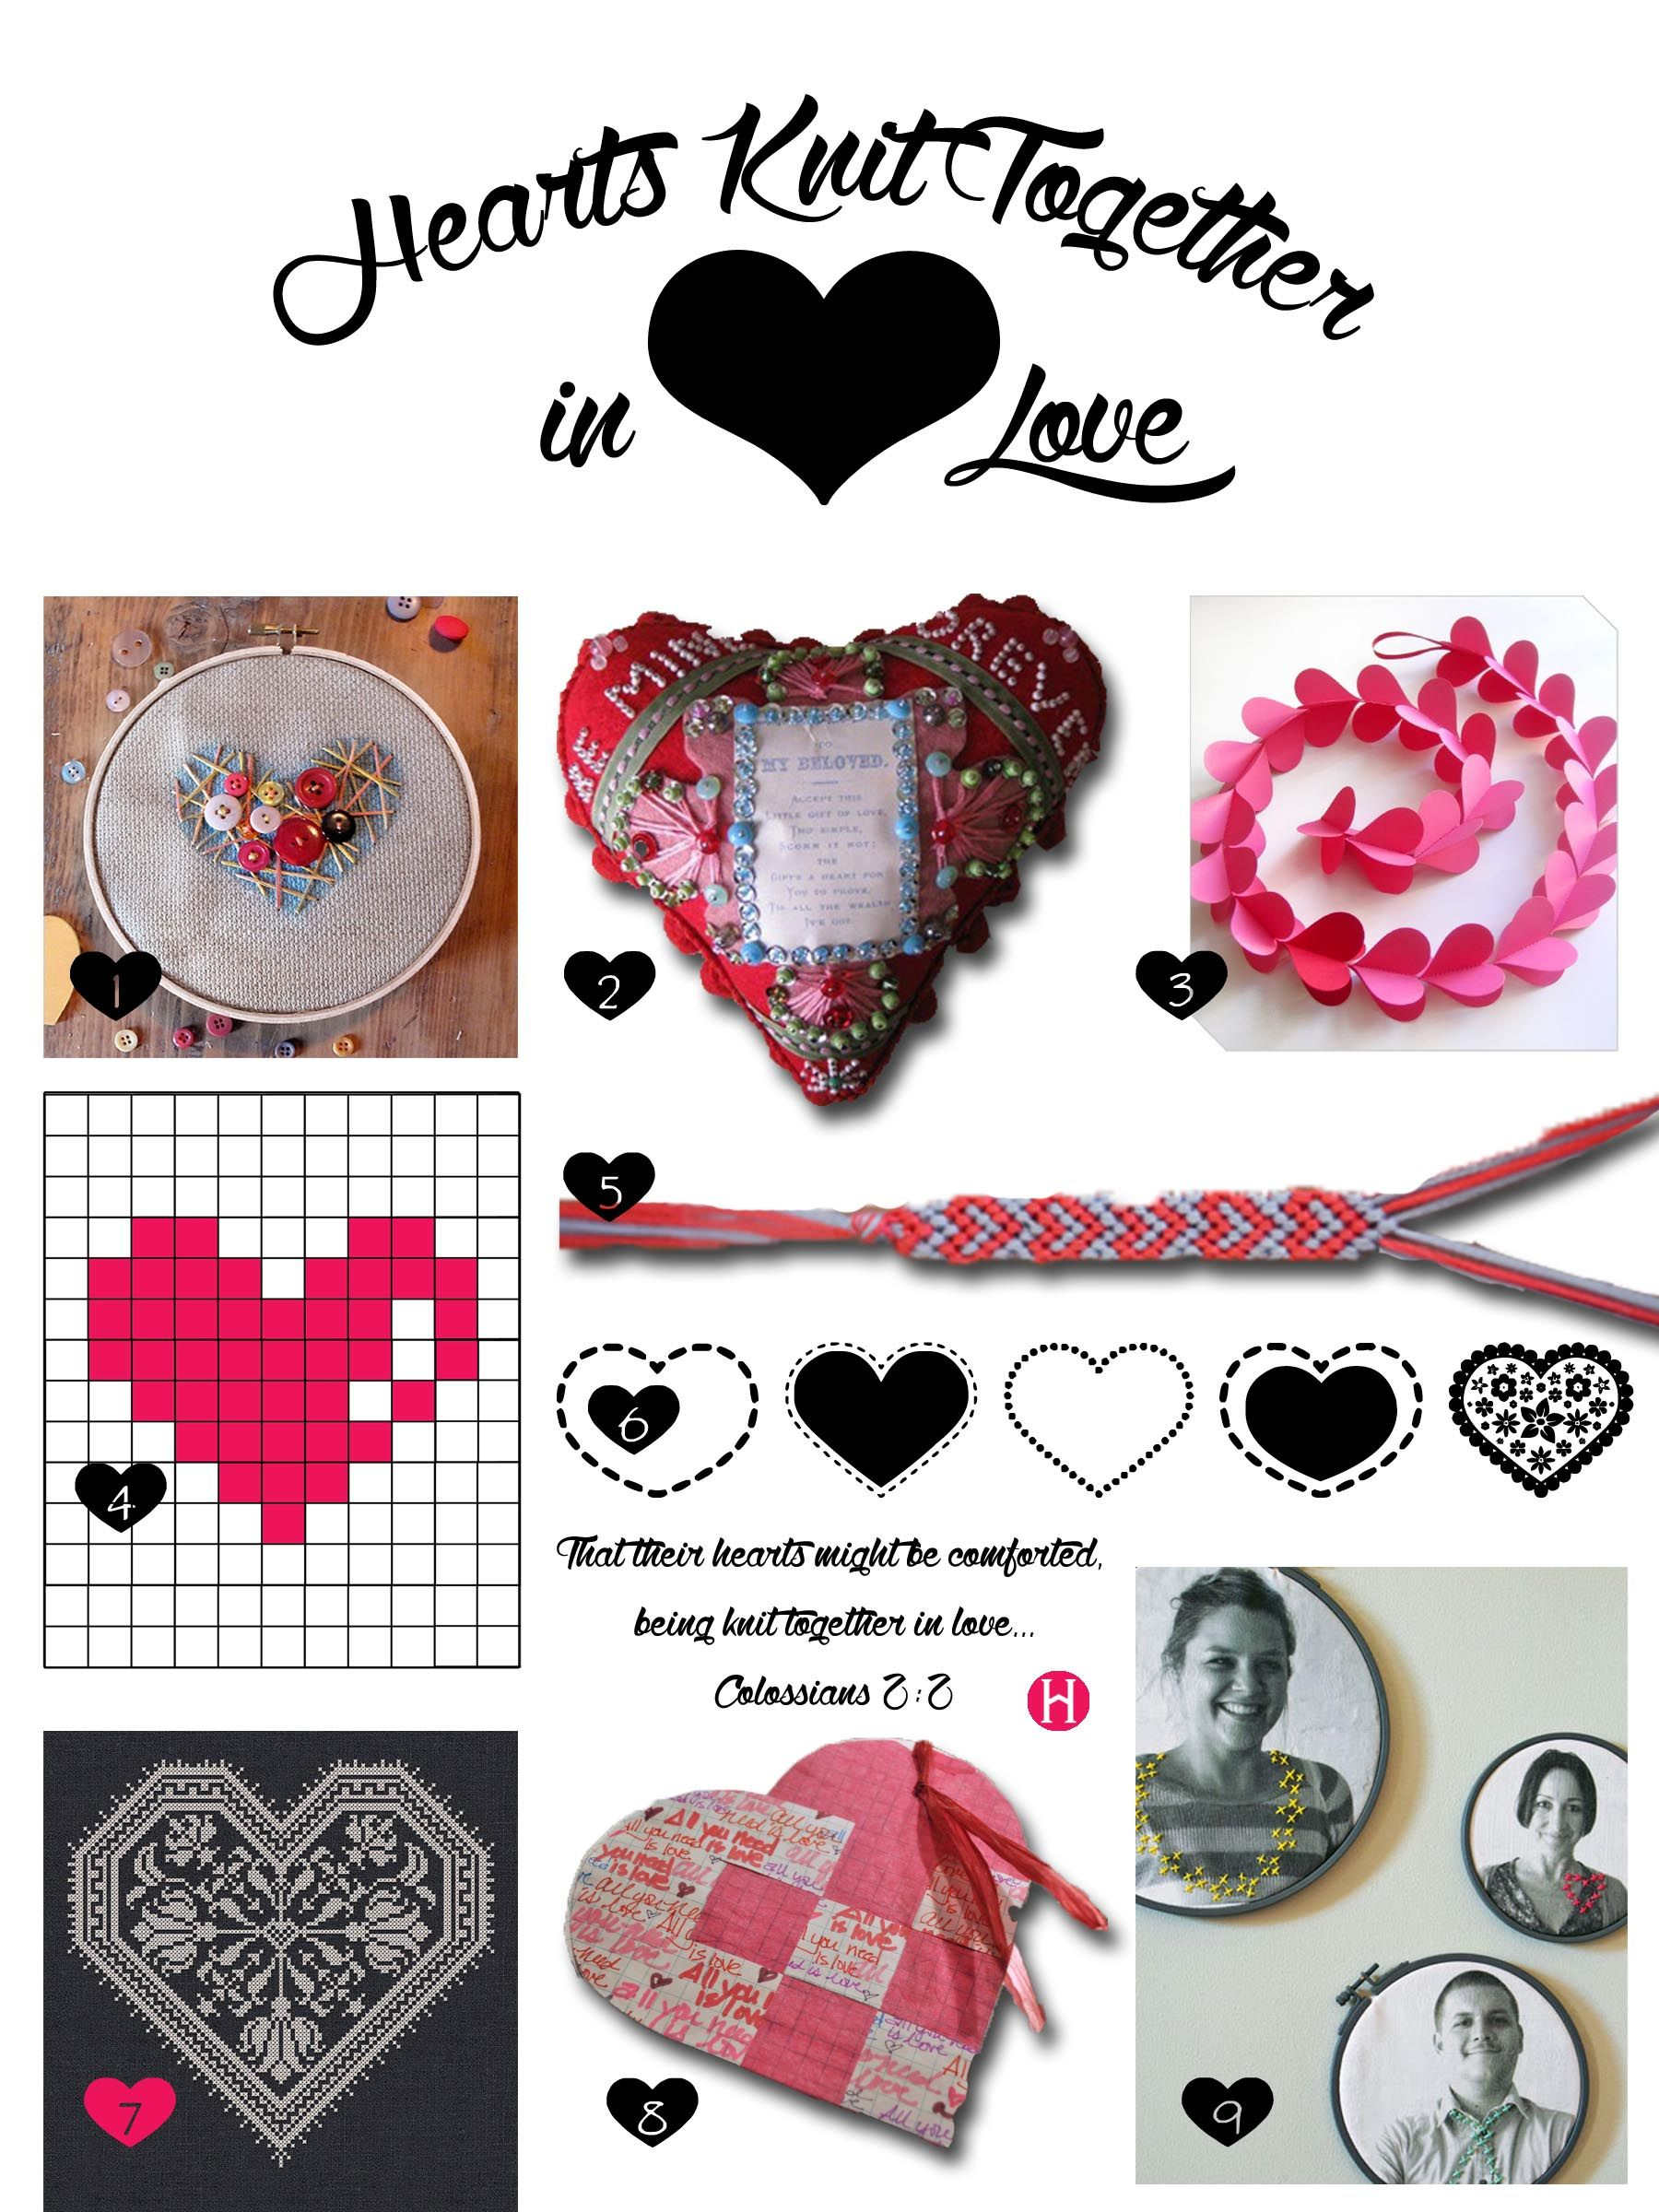 Hearts Knit Together in Love Celebration | Relief Society | Pinterest